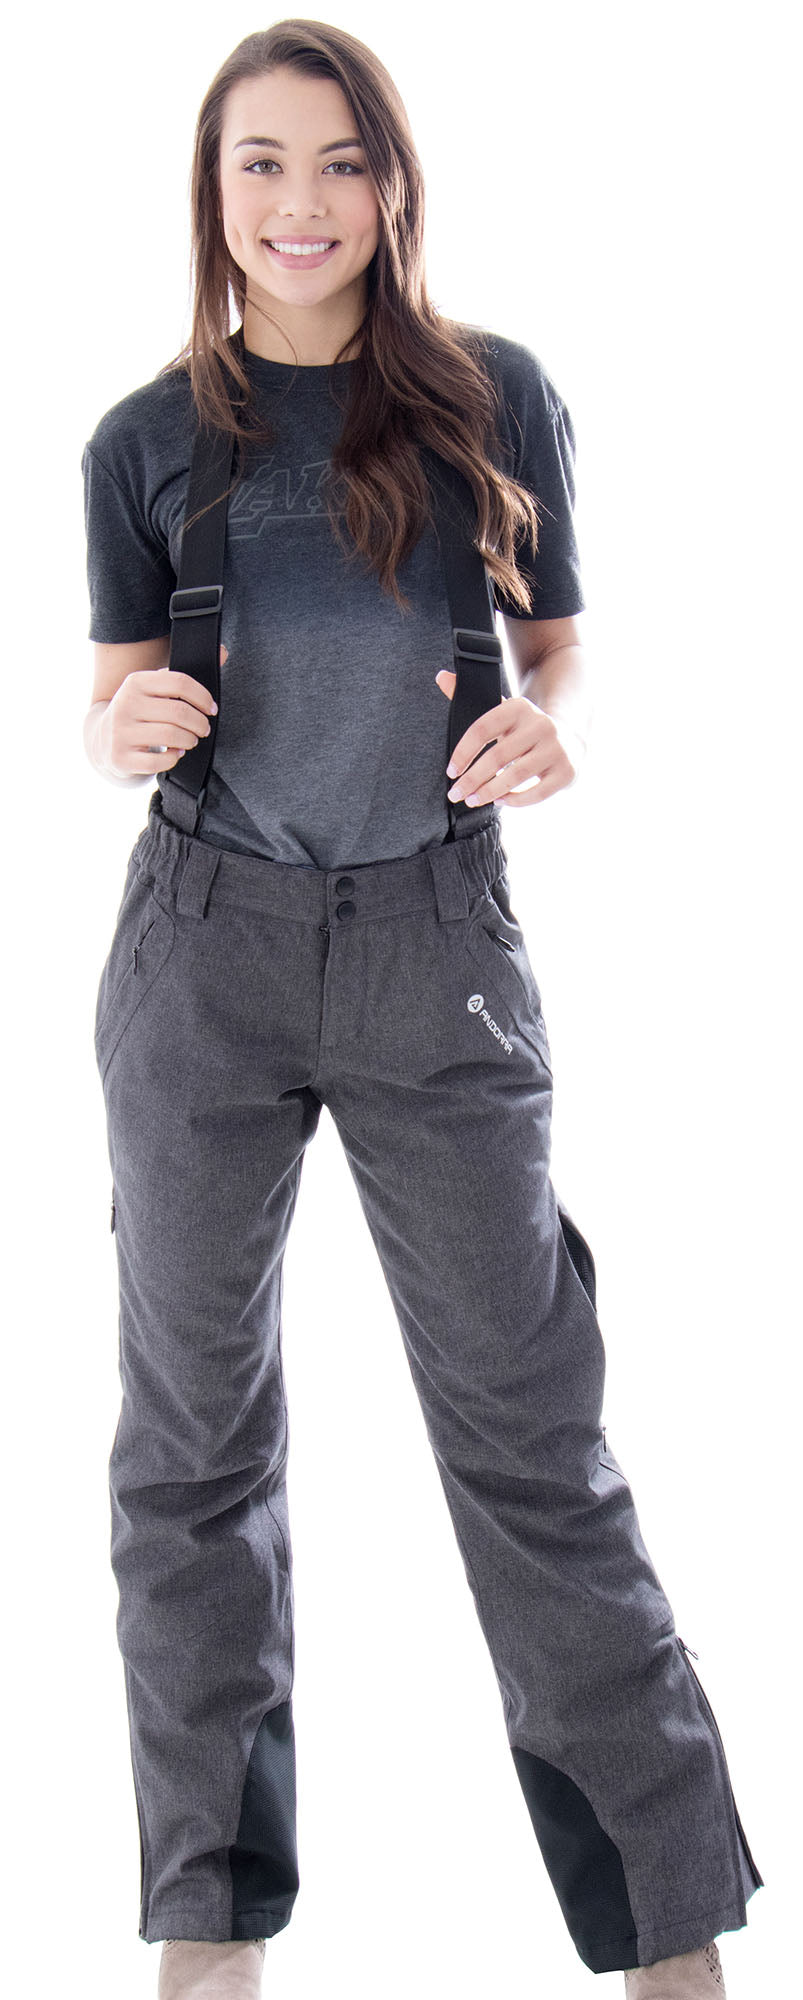 Andorra Women's Performance Insulated Cargo Ski Pants - Grey